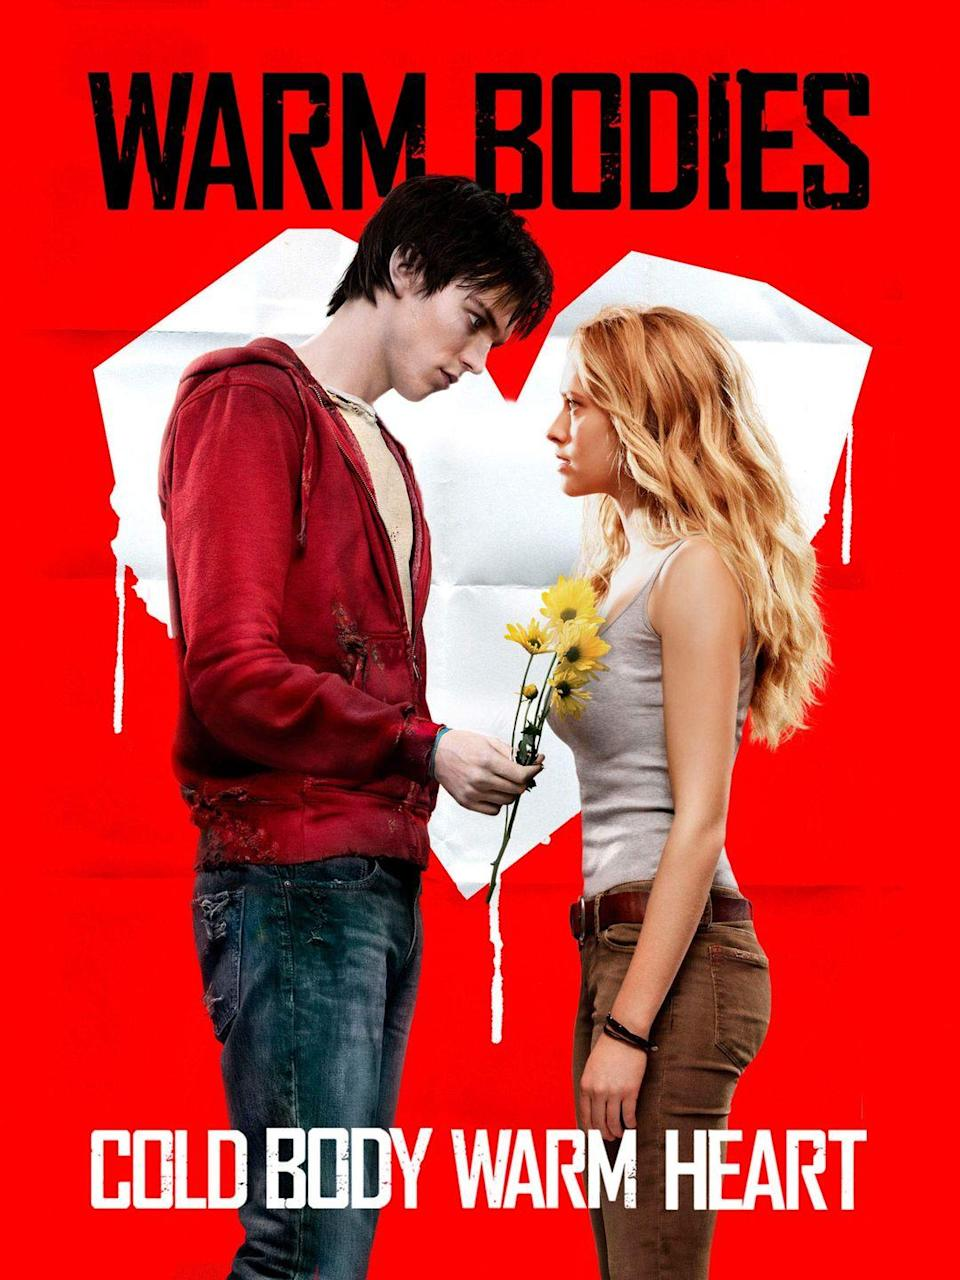 """<p>If you're looking for a Halloween rom-com, look no further than <em>Warm Bodies</em>. It's about a zombie who falls in love with a living girl and it's adorable!</p><p><a class=""""link rapid-noclick-resp"""" href=""""https://www.amazon.com/Warm-Bodies-Nicholas-Hoult/dp/B00CL50KDY/?tag=syn-yahoo-20&ascsubtag=%5Bartid%7C10065.g.29354714%5Bsrc%7Cyahoo-us"""" rel=""""nofollow noopener"""" target=""""_blank"""" data-ylk=""""slk:Watch Now"""">Watch Now</a></p>"""